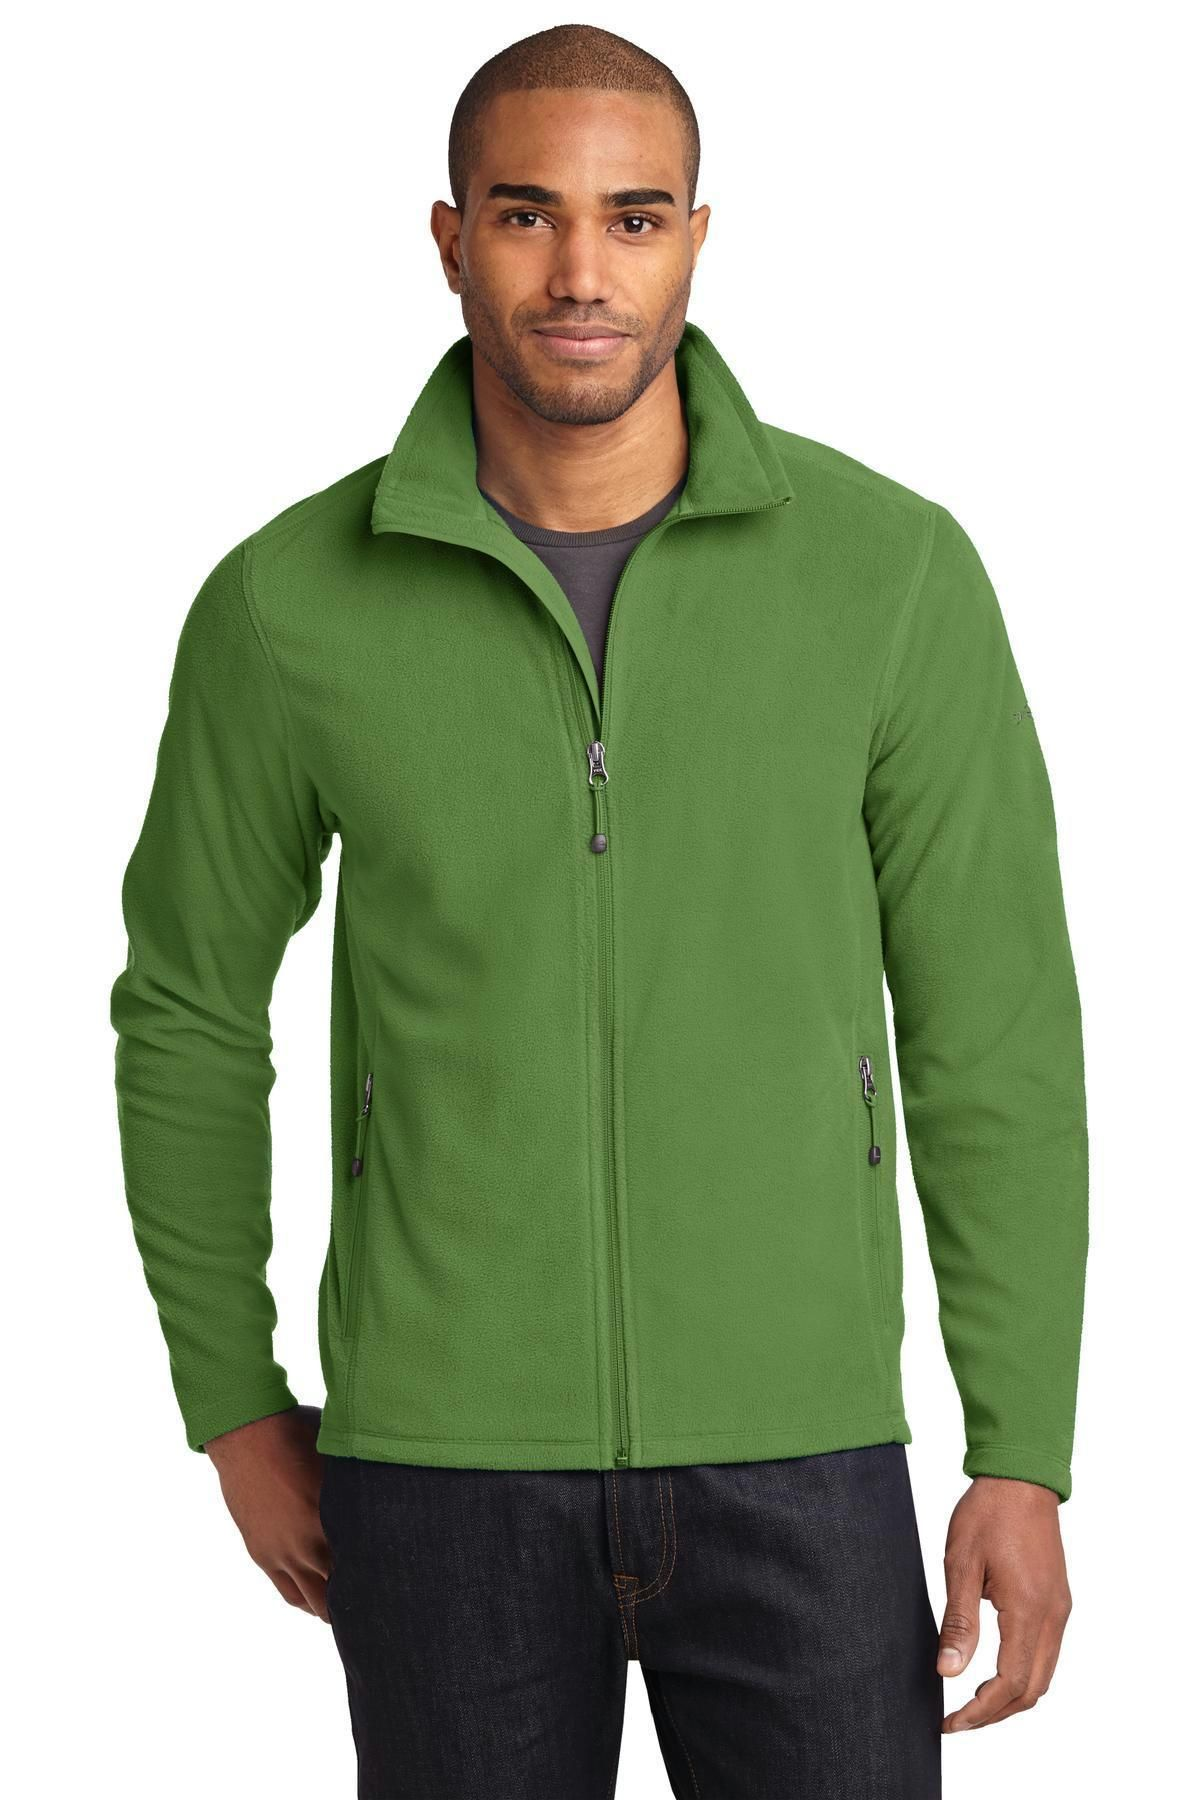 f4e6731ff Eddie Bauer Full-Zip microFleece Jacket. EB224 | Exercise & Wellness ...